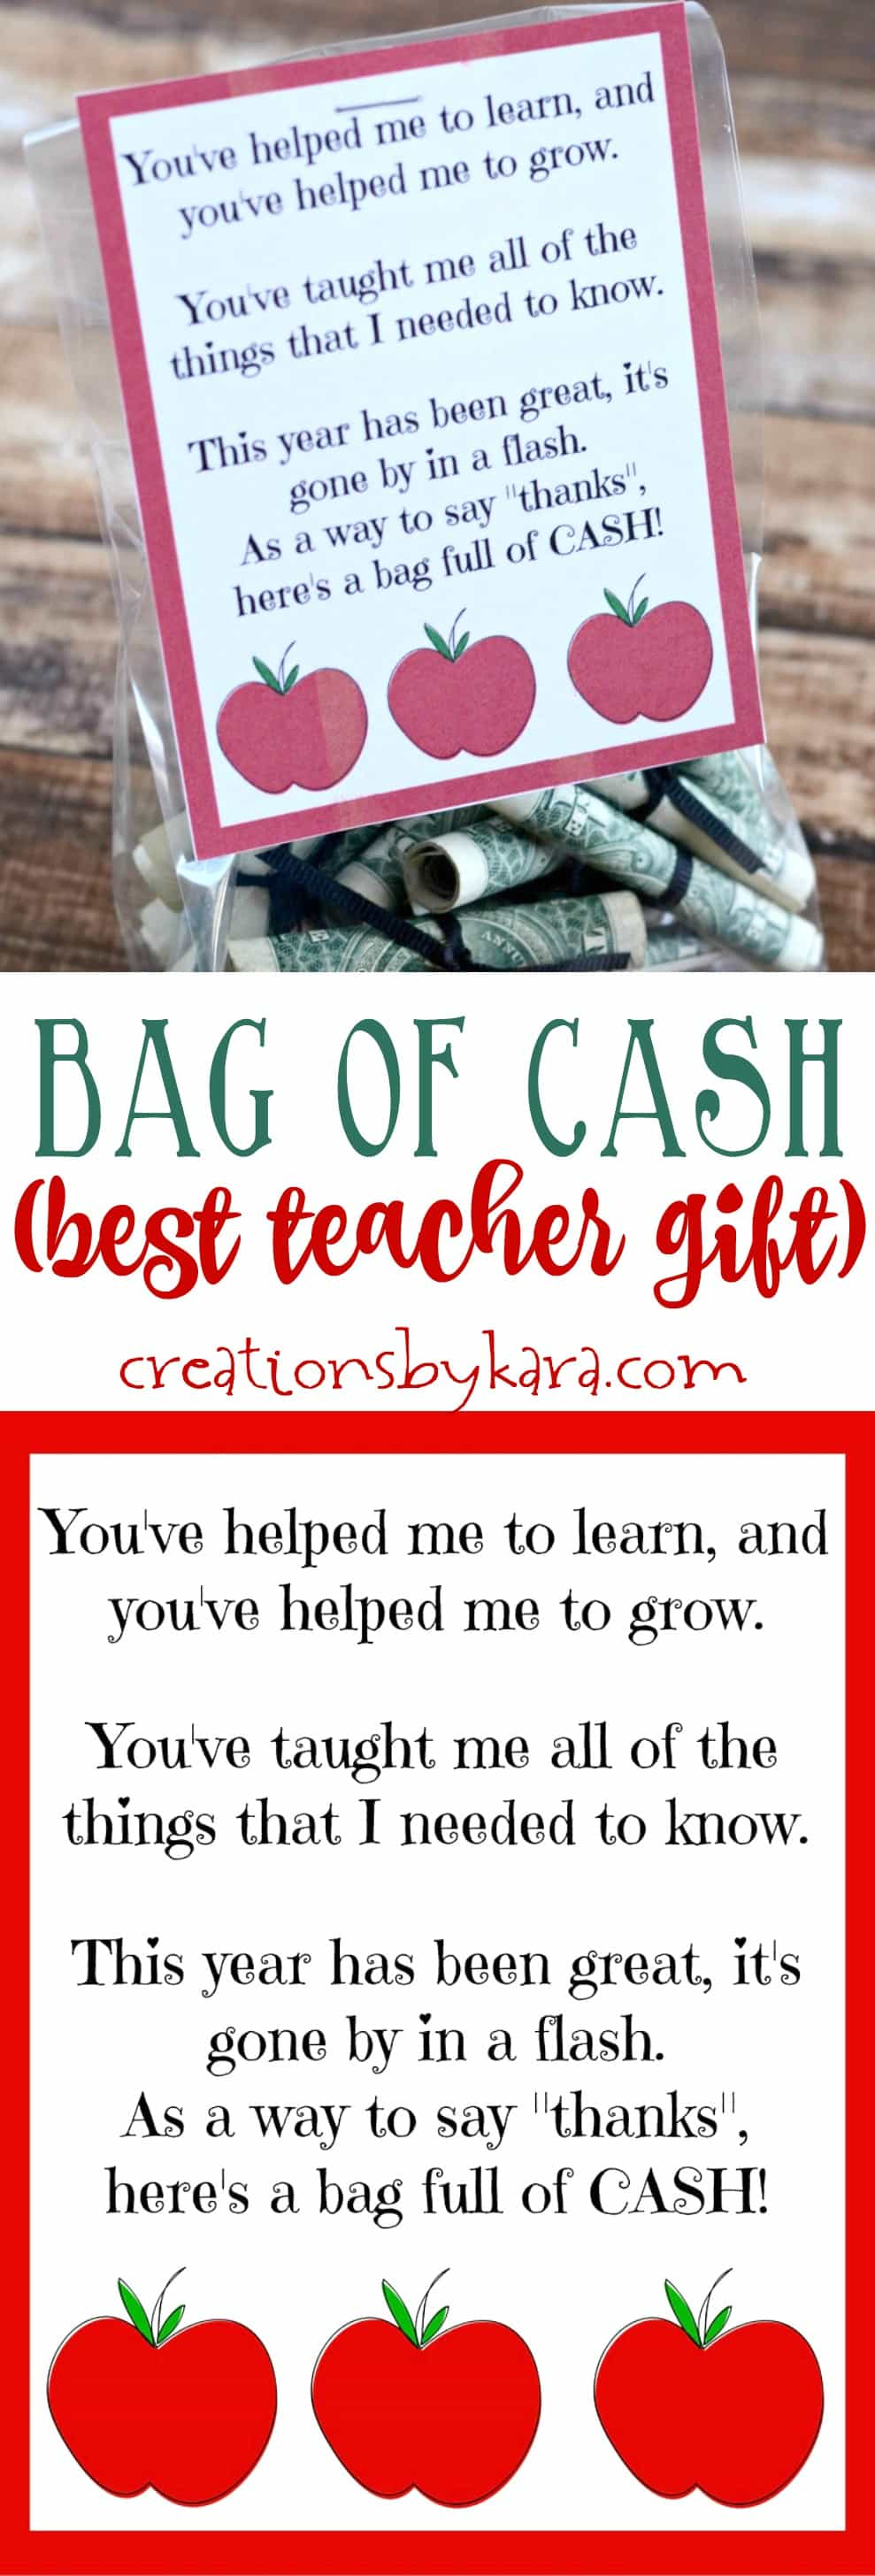 Best Teacher Gift - Bag of Cash - Creations by Kara